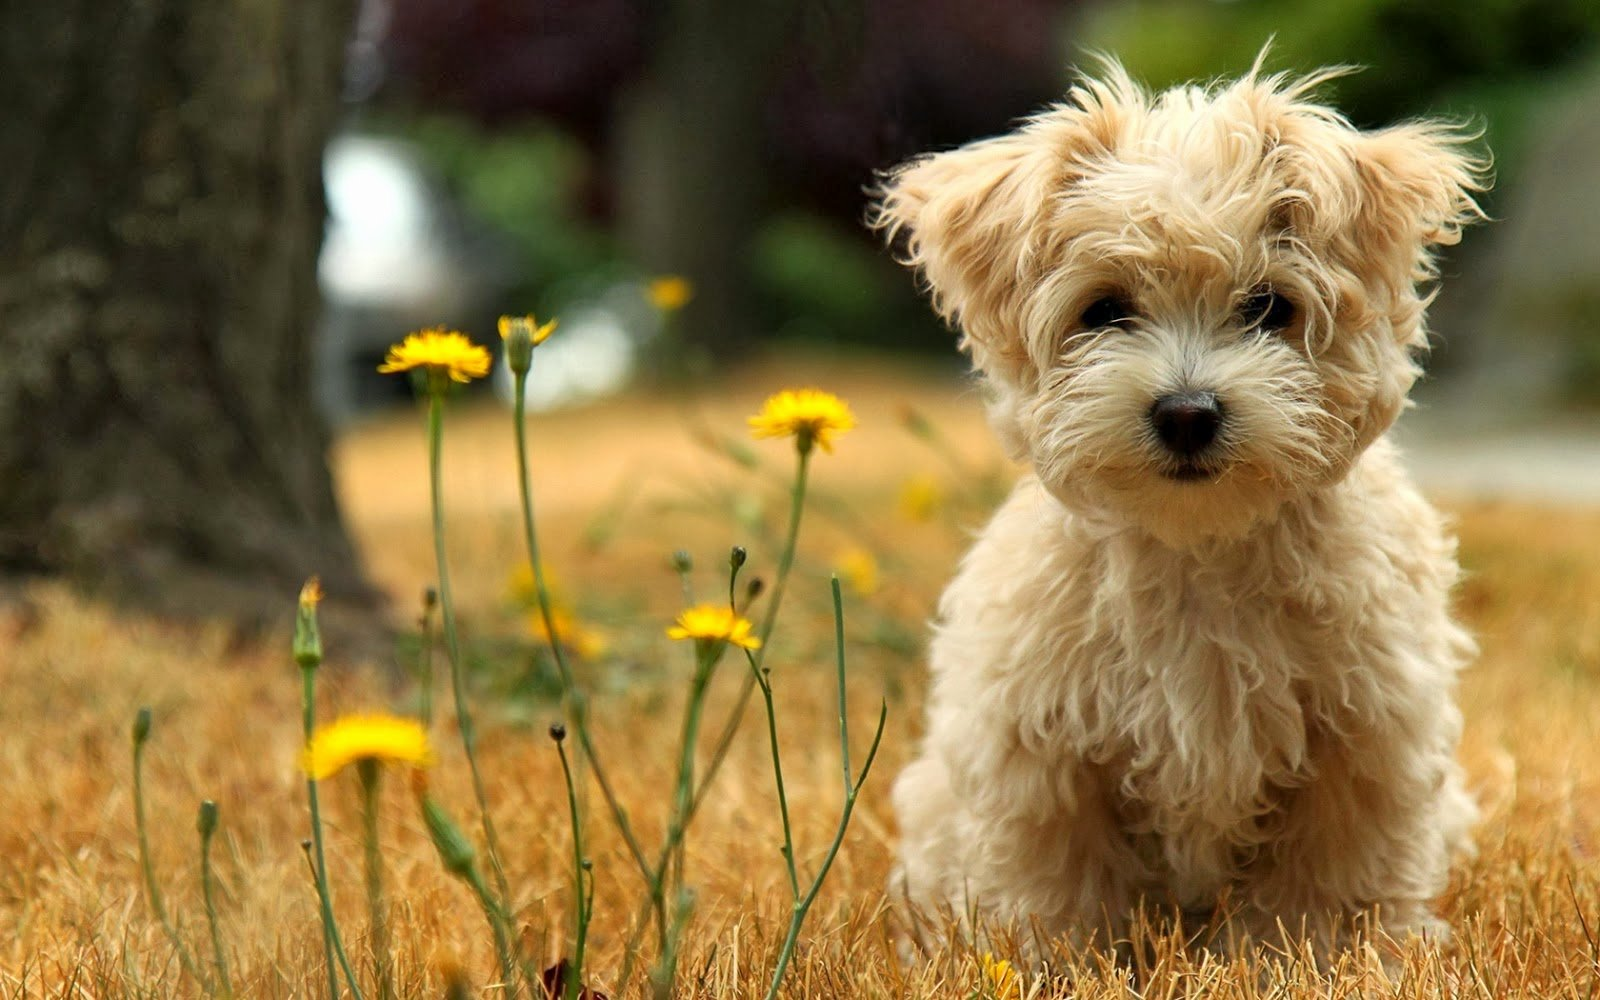 Dog Backgrounds for Desktop Best Of Cute Puppies Hd Wallpapers Hd Wallpapers Blog